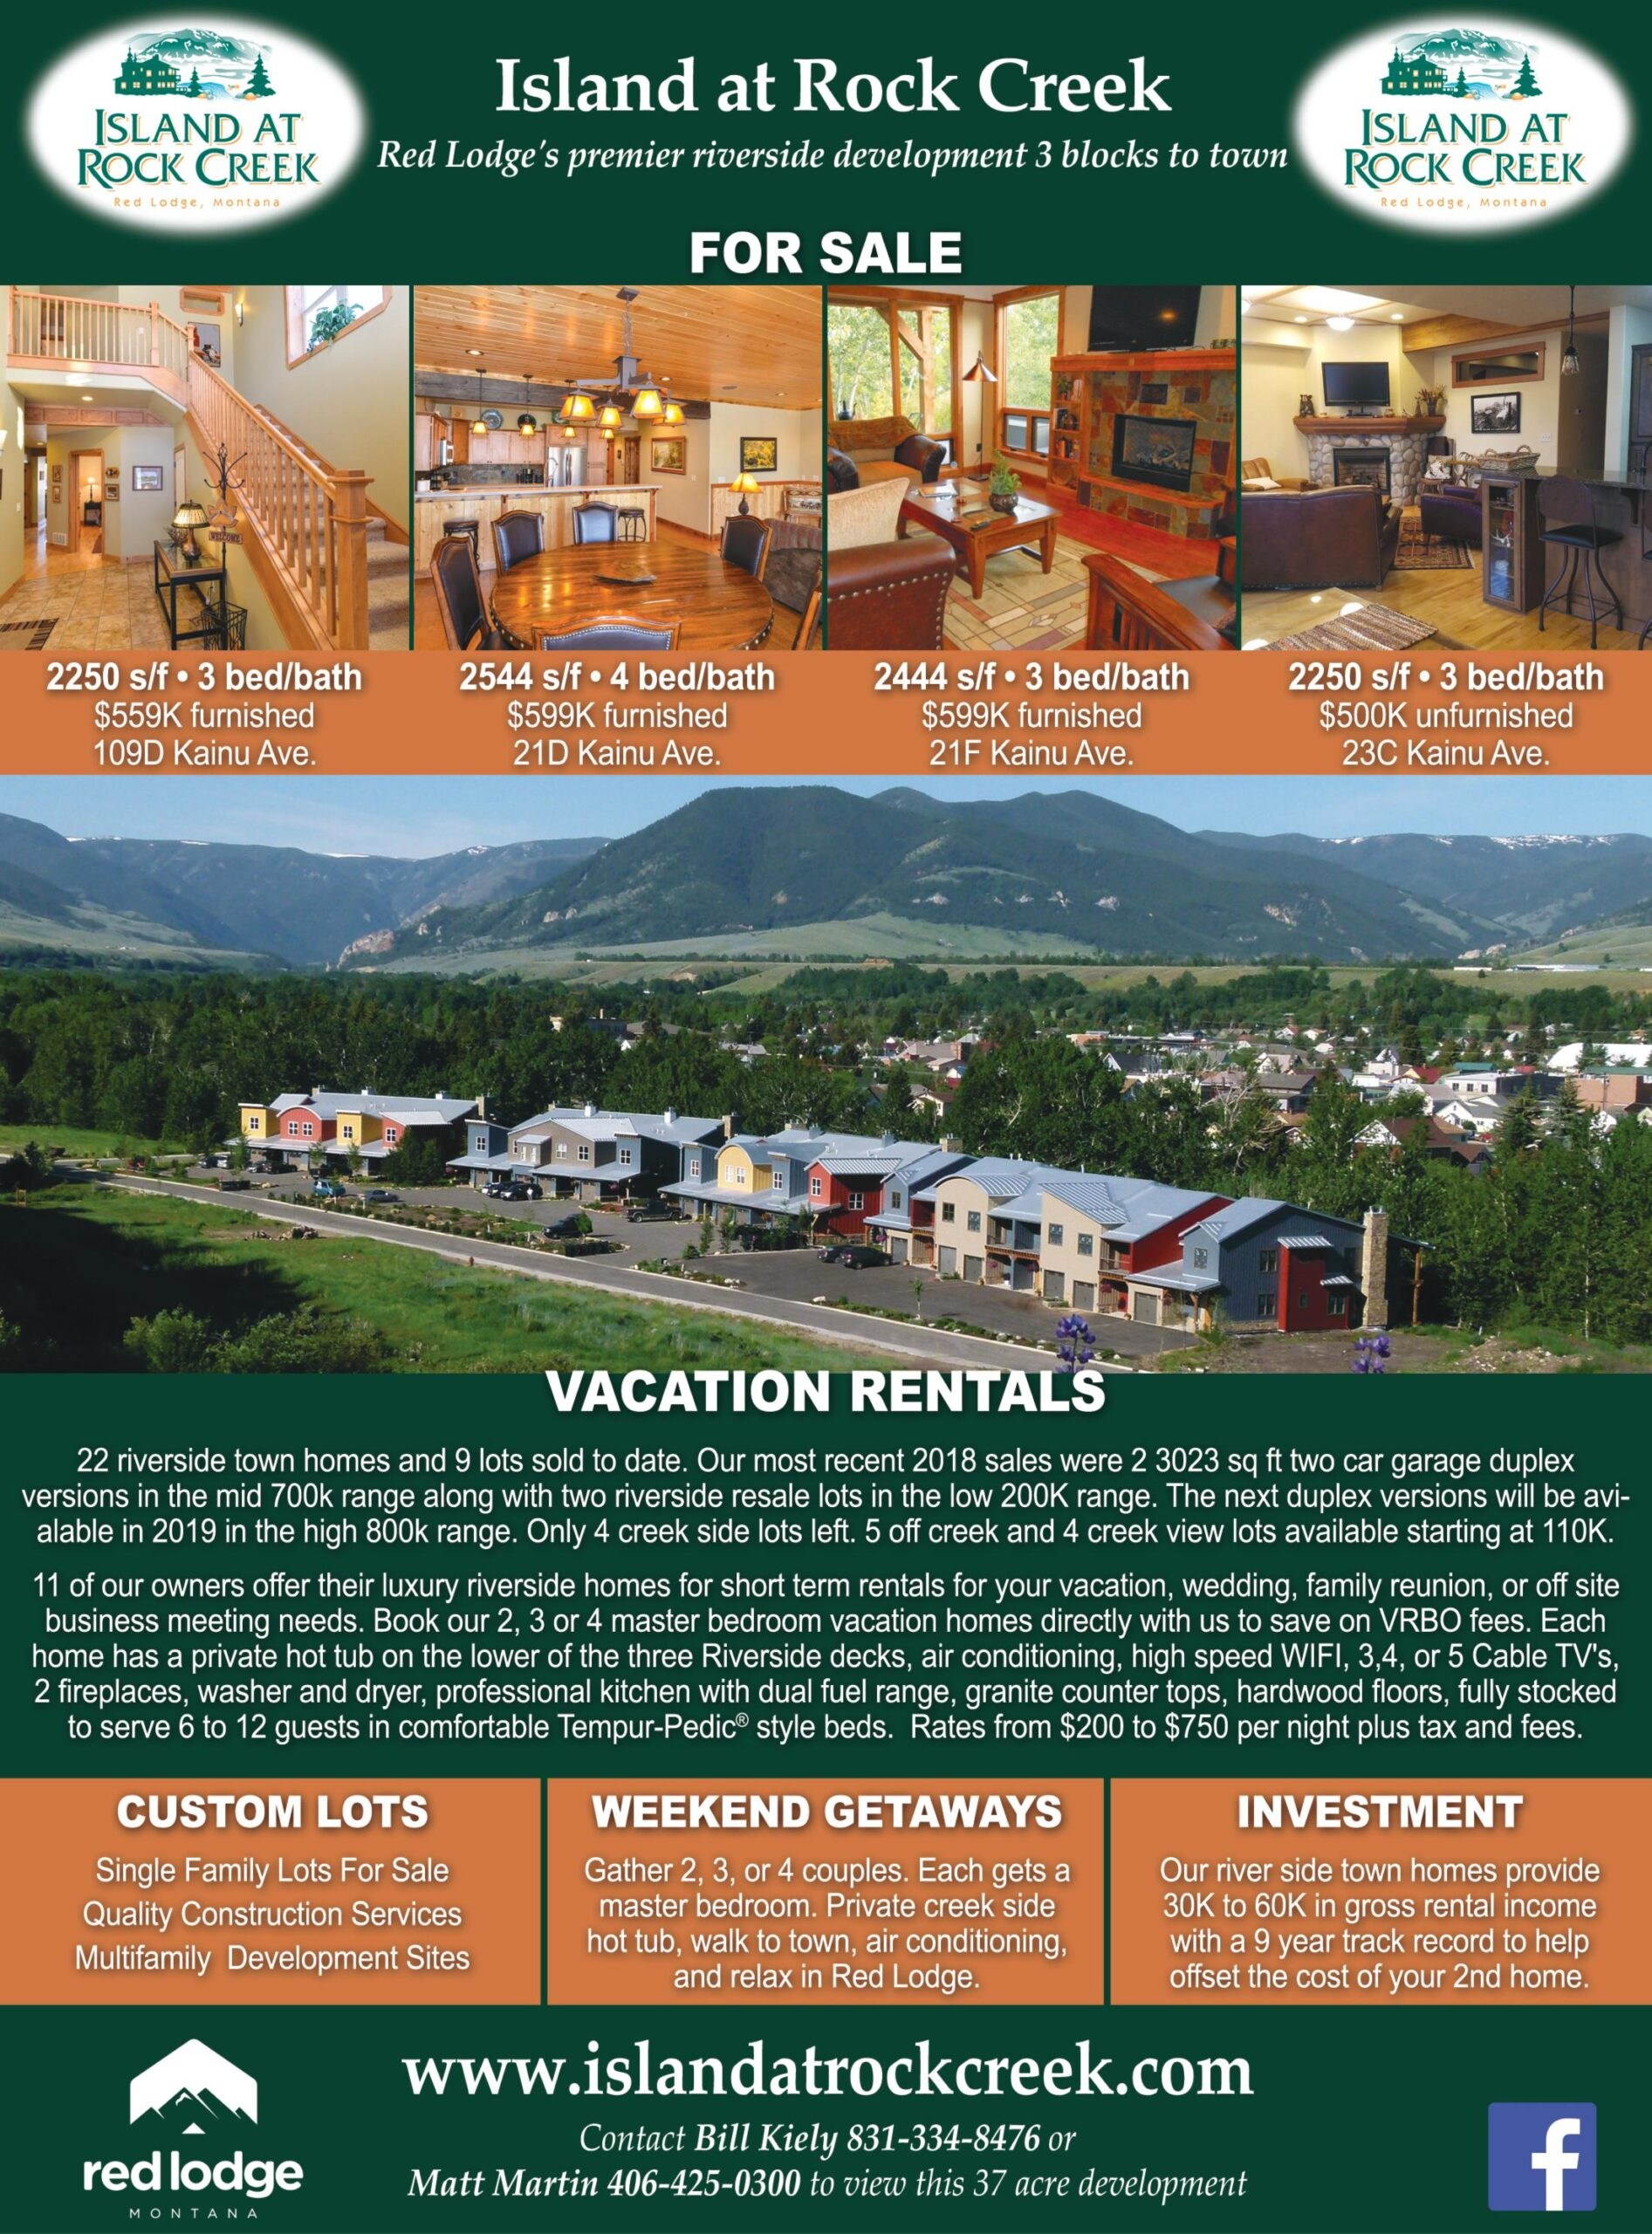 properties for sale red lodge montana